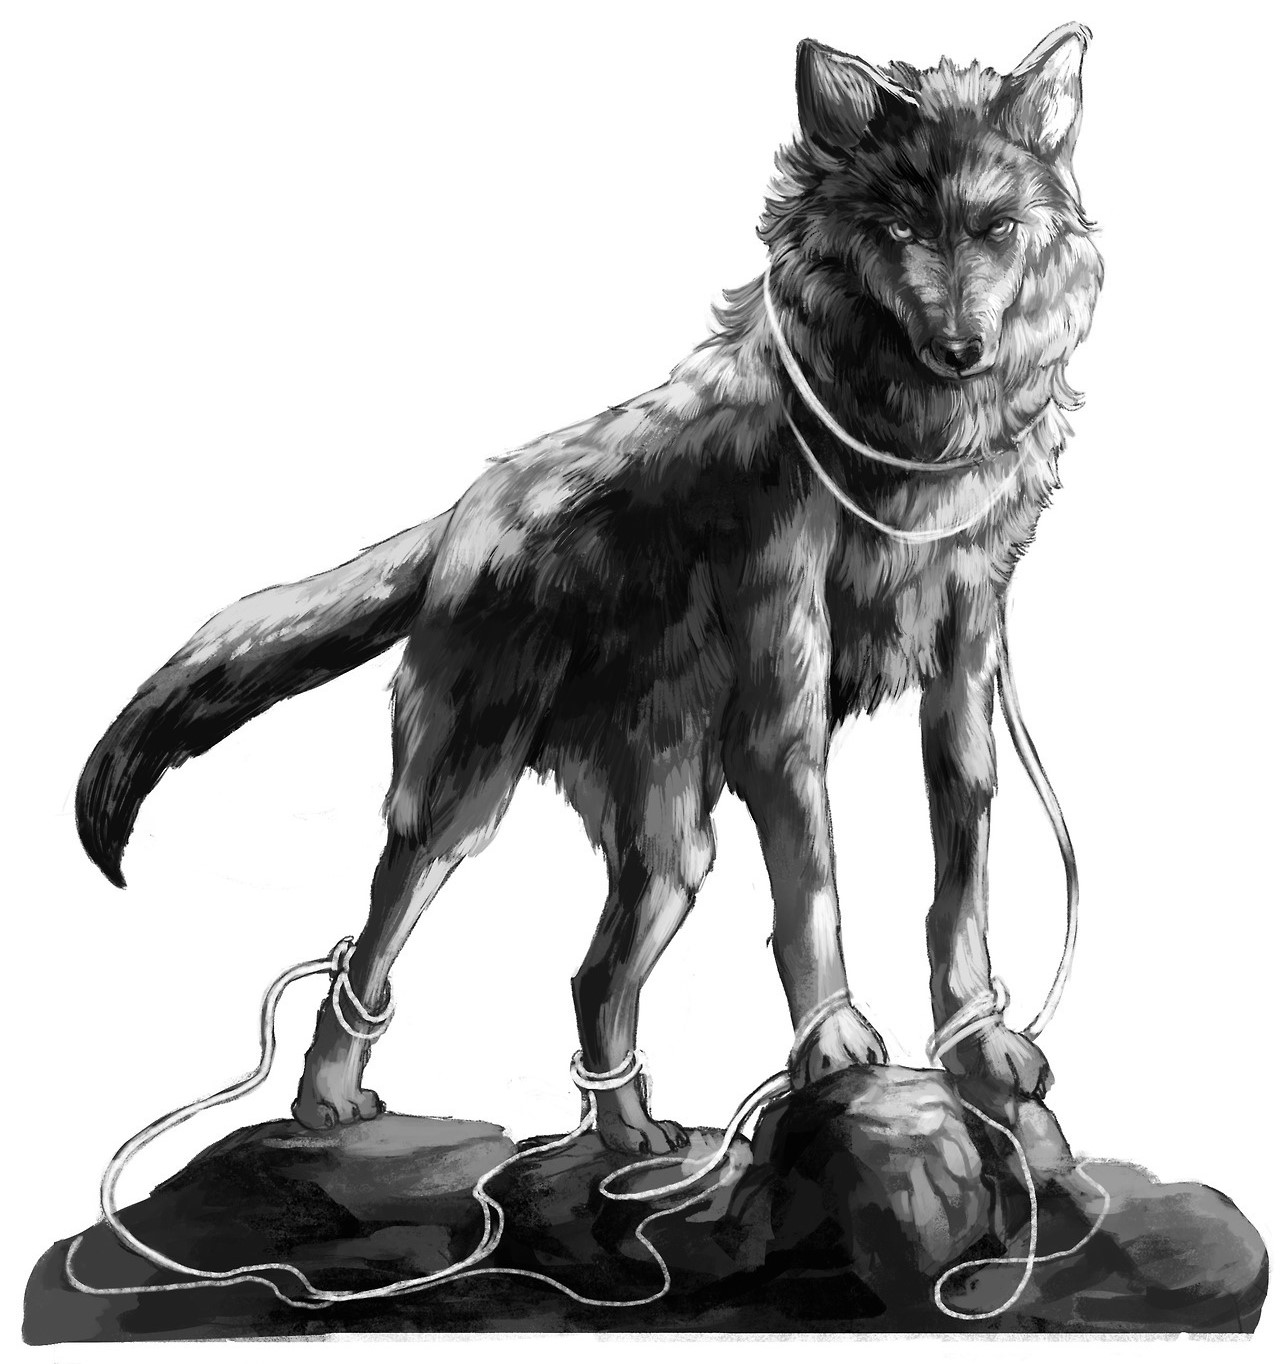 d4f09b681 Fenris Wolf | Riordan Wiki | FANDOM powered by Wikia